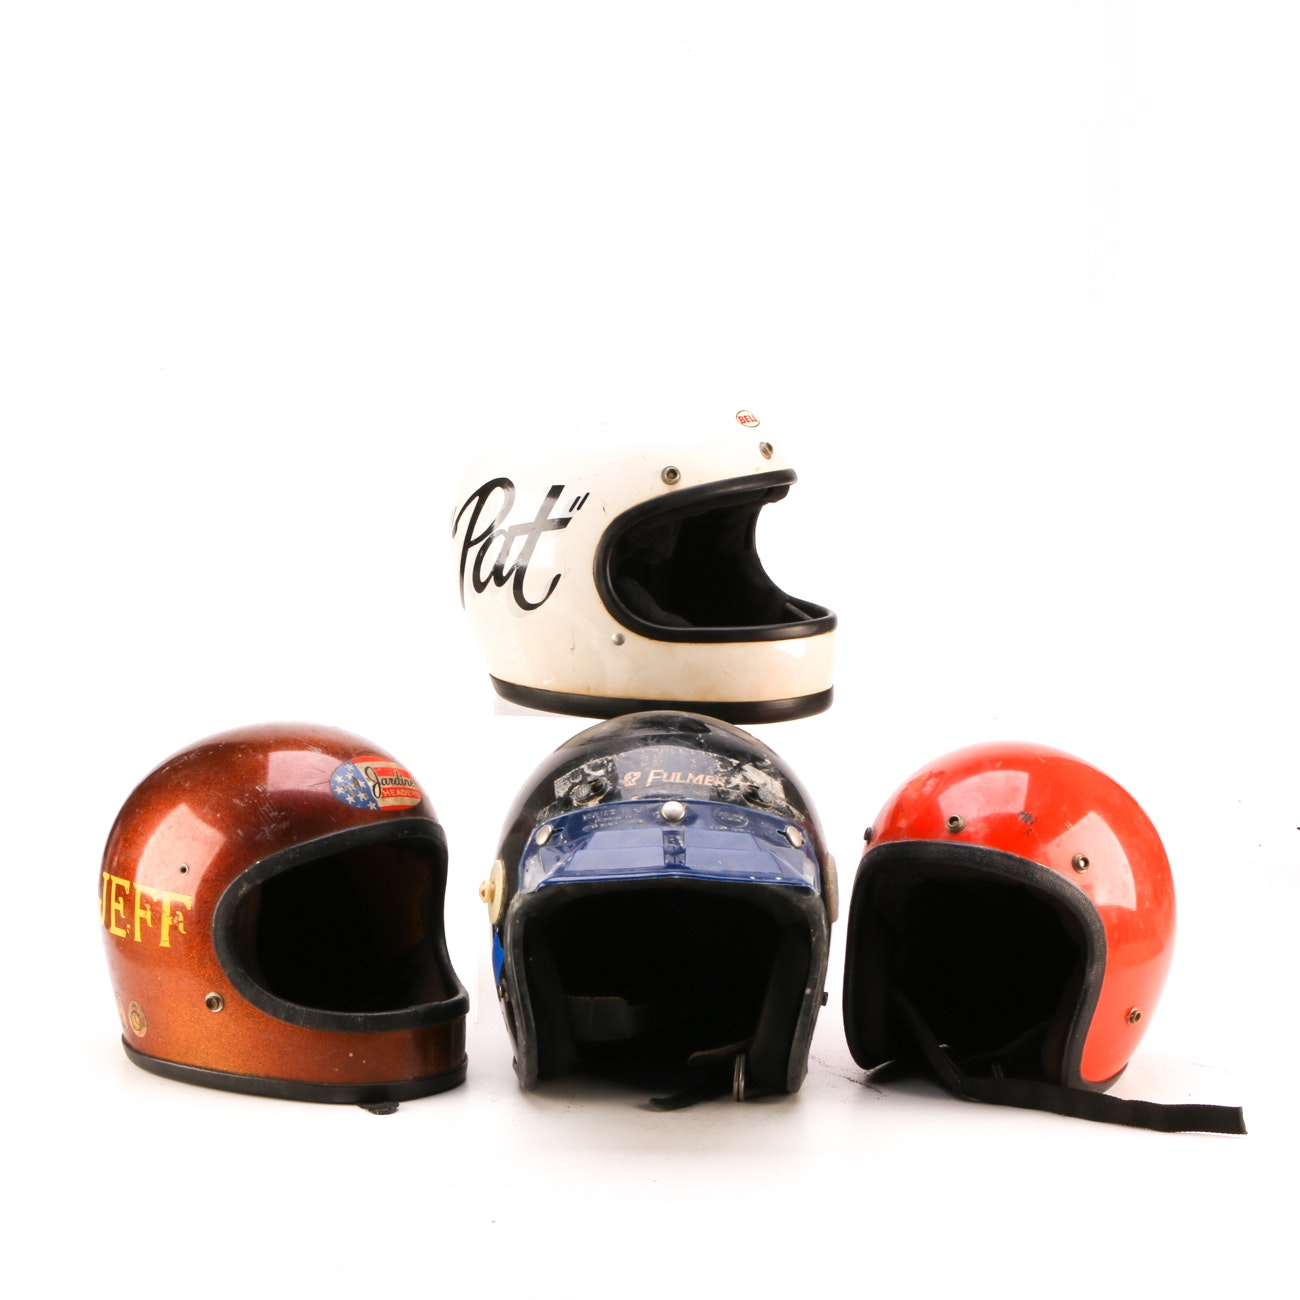 Four Youth-Size Motorcycle Helmets